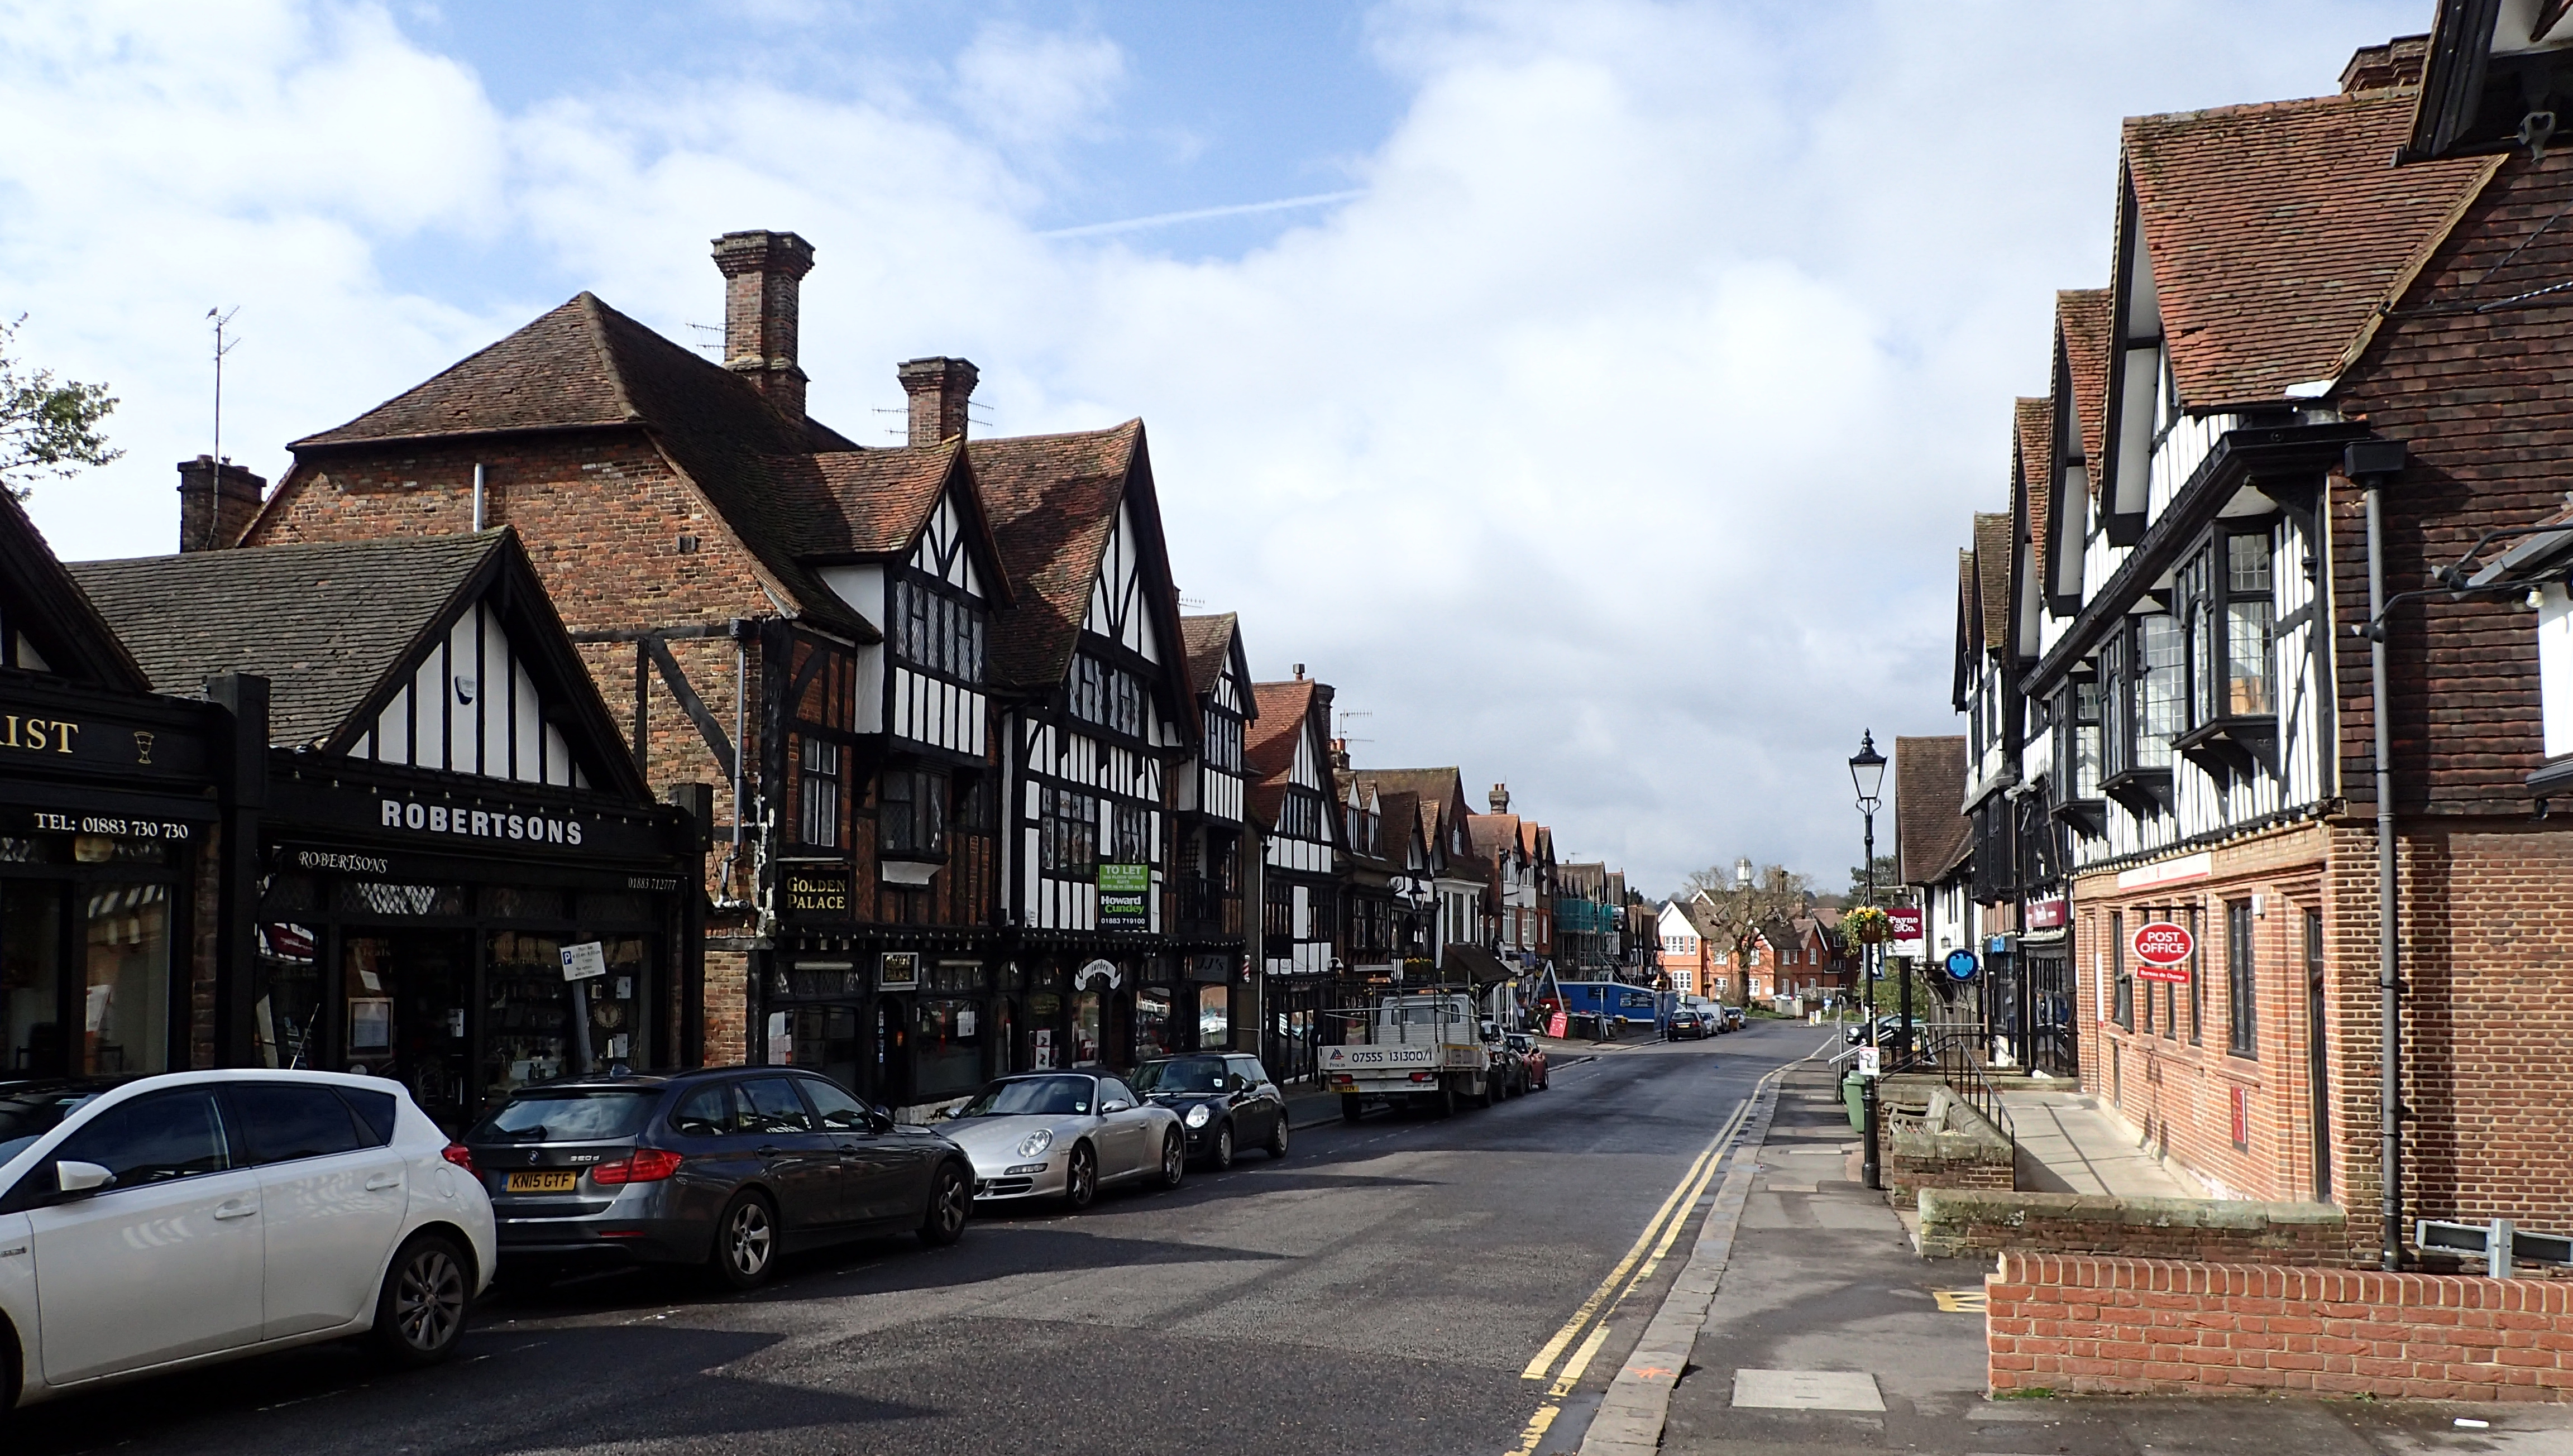 Most larger towns are encountered at the beginning and end of each days walk as I arrive or leave by public transport. Station Road, Oxted